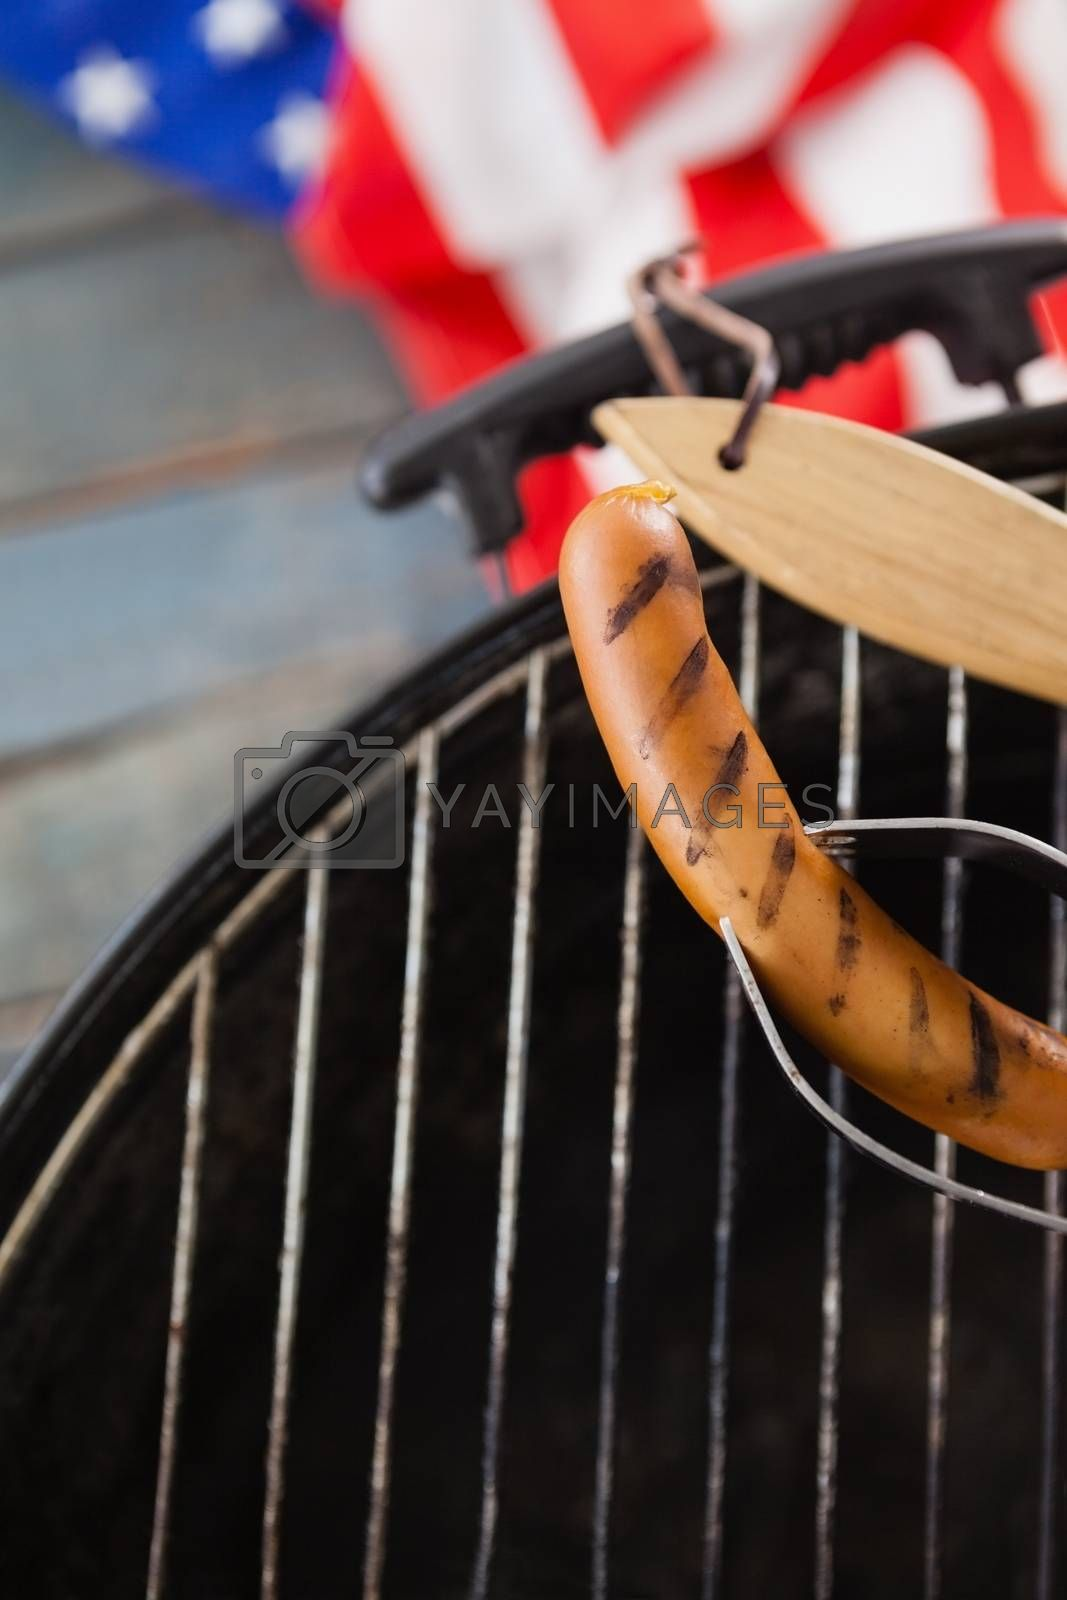 Close-up of sausage on barbeque with 4th July theme